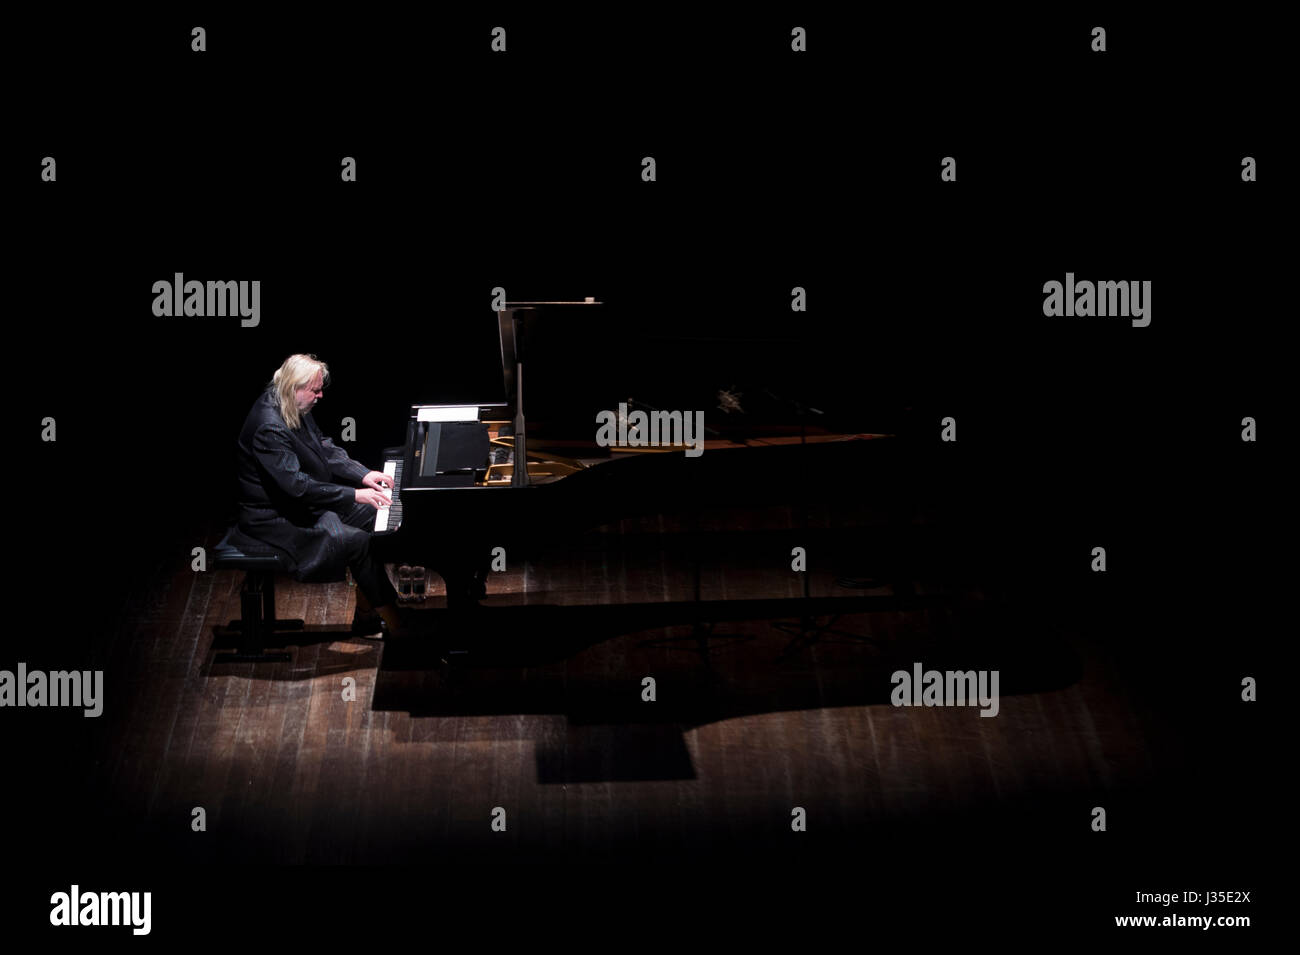 Turin, Italy. 02nd May, 2017. 02 May 2017 - Rick Wakeman in concert at theater 'Colosseo', Turin, with his - Stock Image